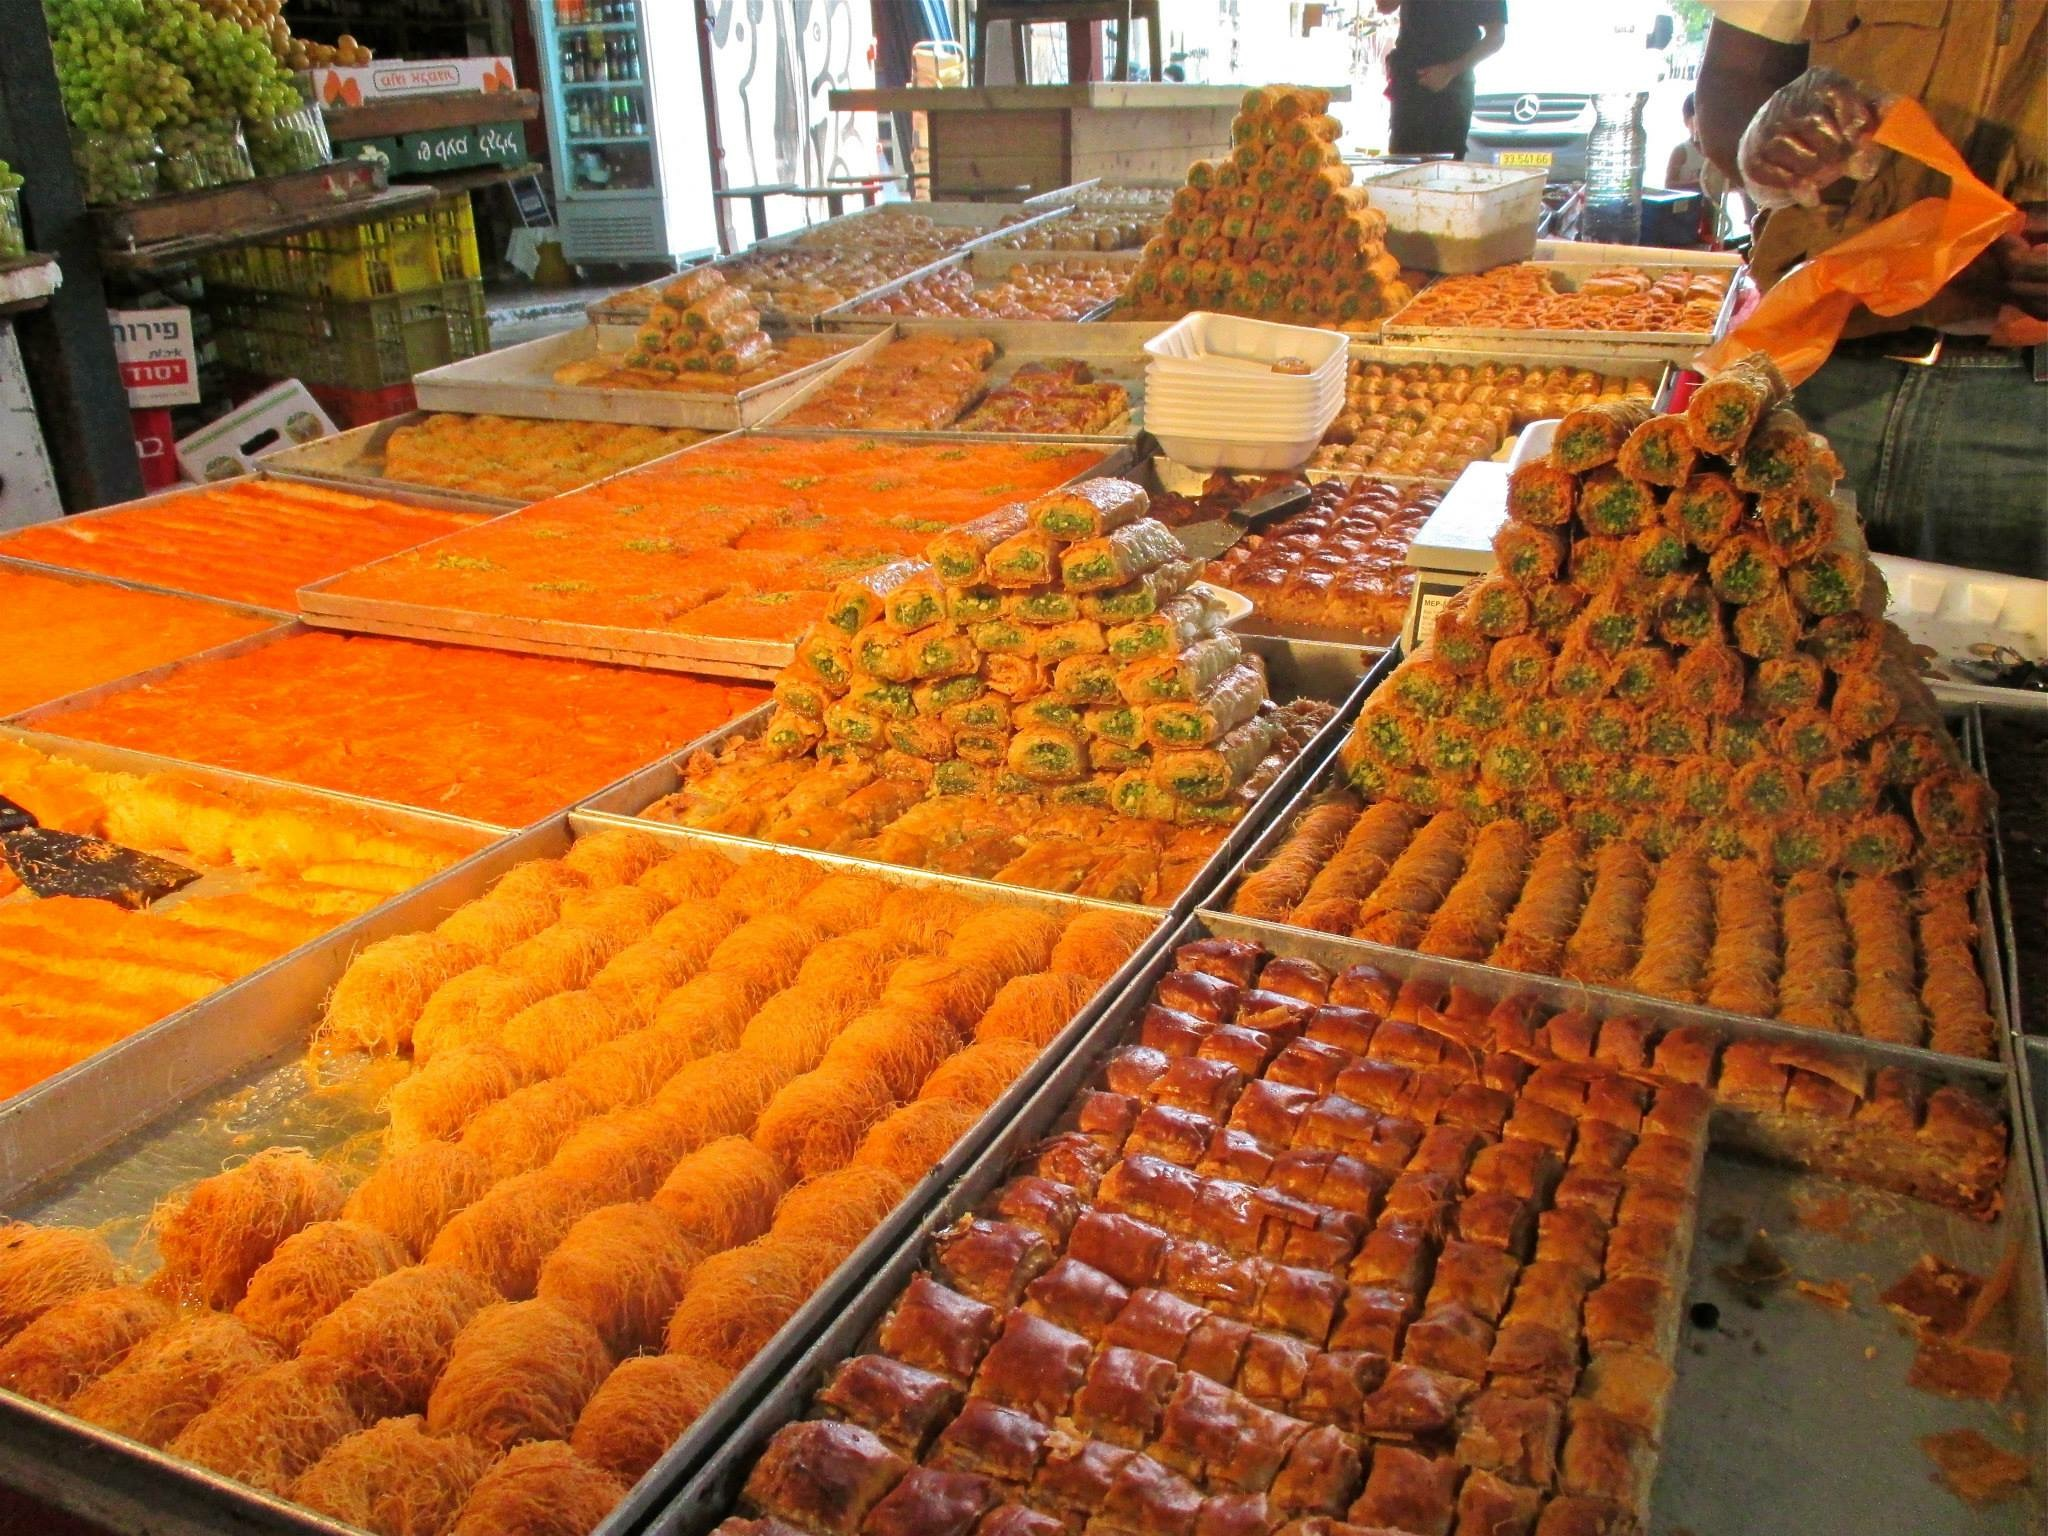 Pastries, including walnut and pistachio baklava, from a typical market